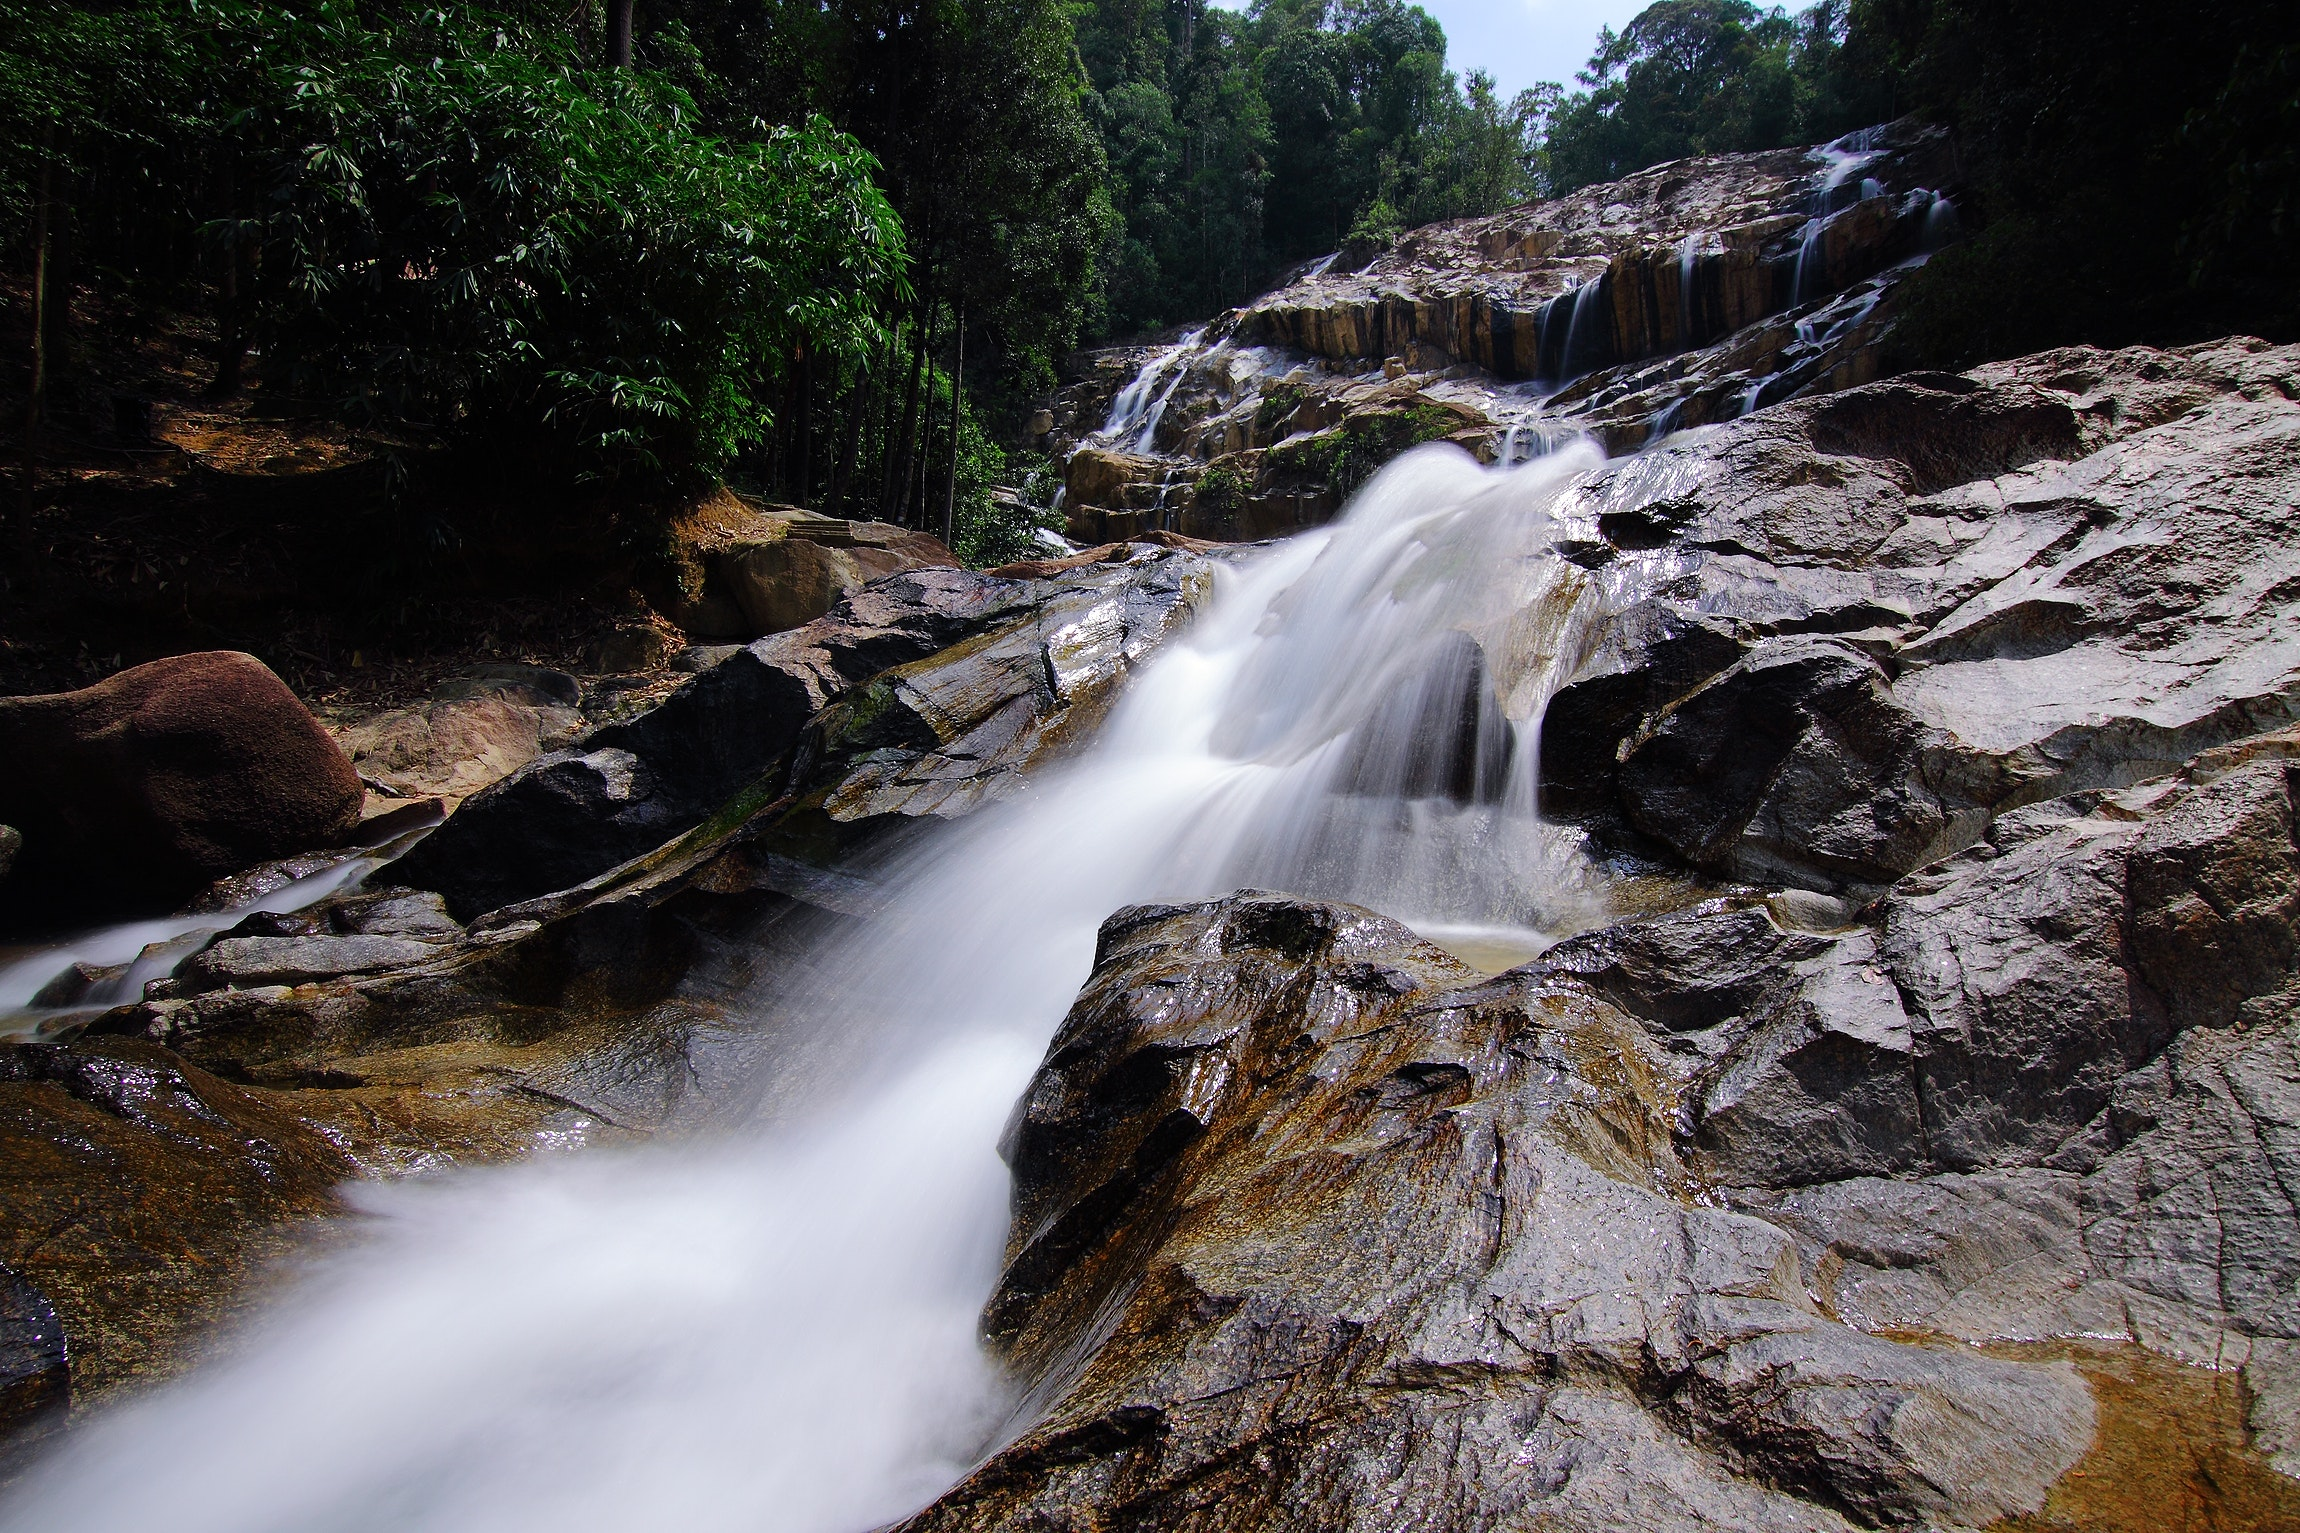 Waterfalls on Rocks Surrounded by Trees, Beautiful, Rapids, Wet, Waterfalls, HQ Photo